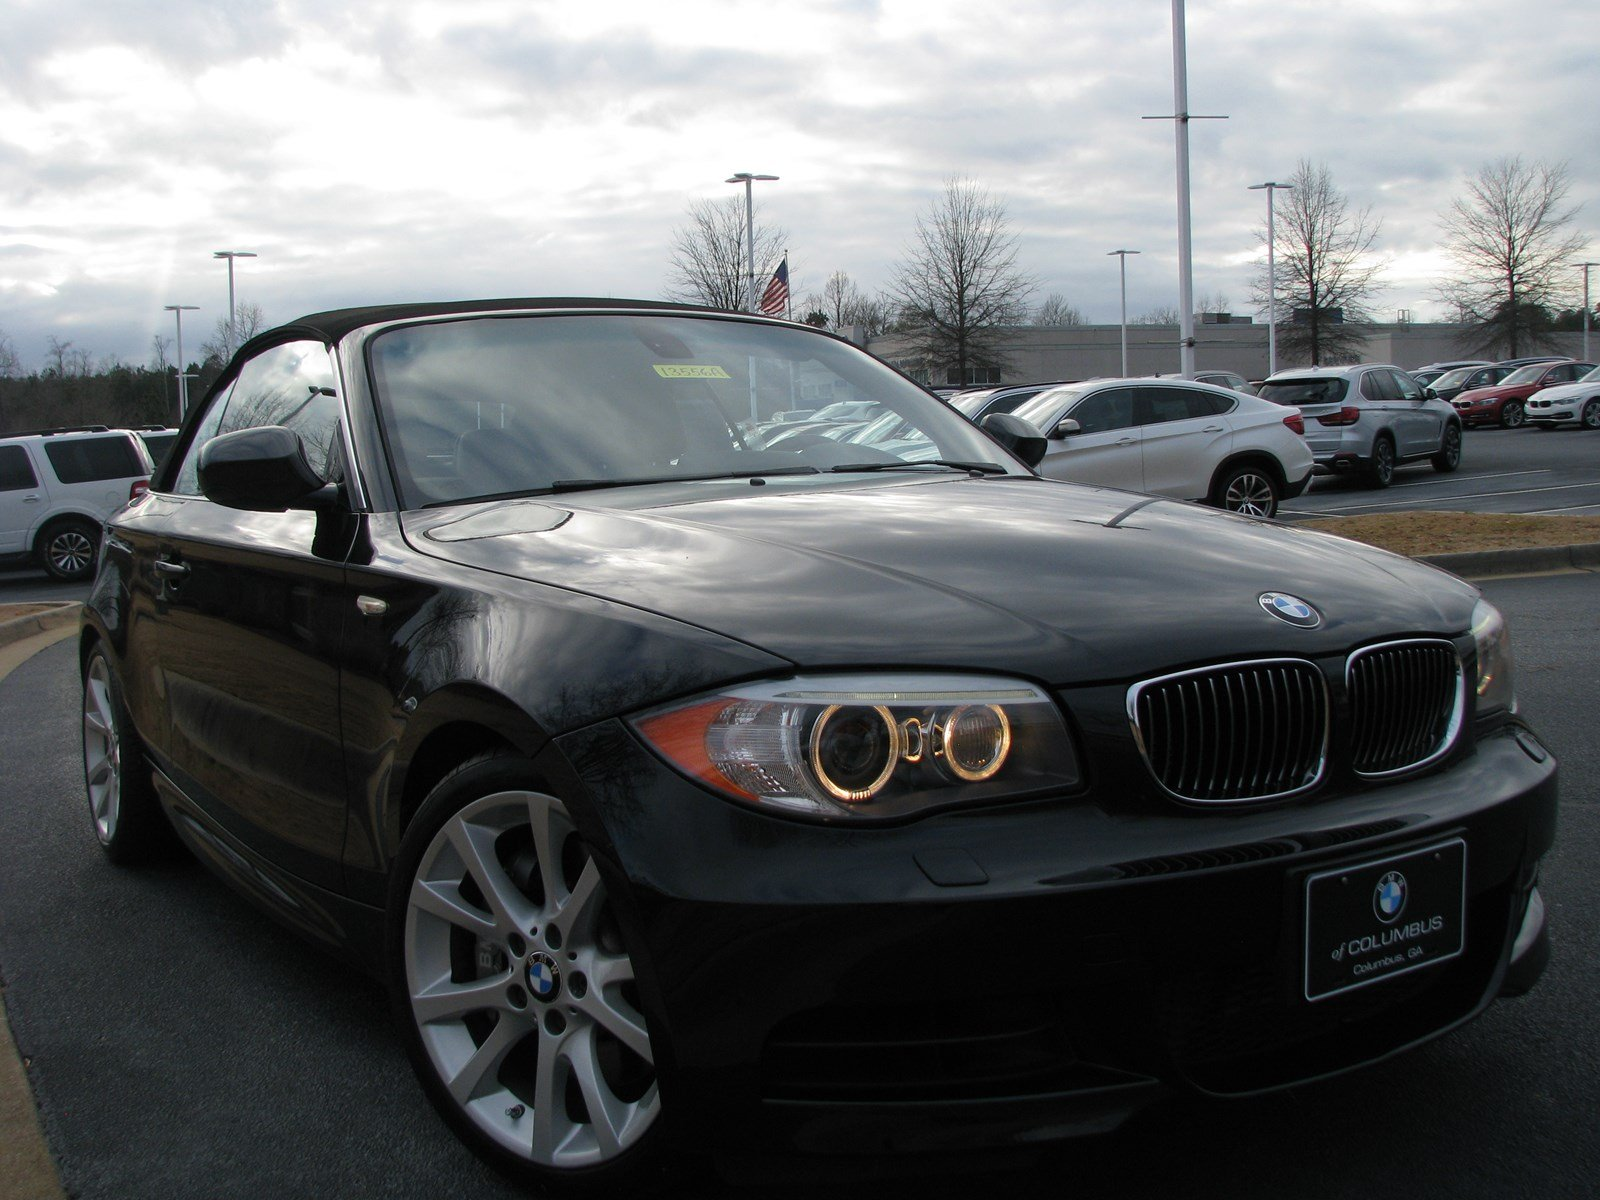 PreOwned BMW Series I Convertible In Columbus A - 2012 bmw 135i convertible